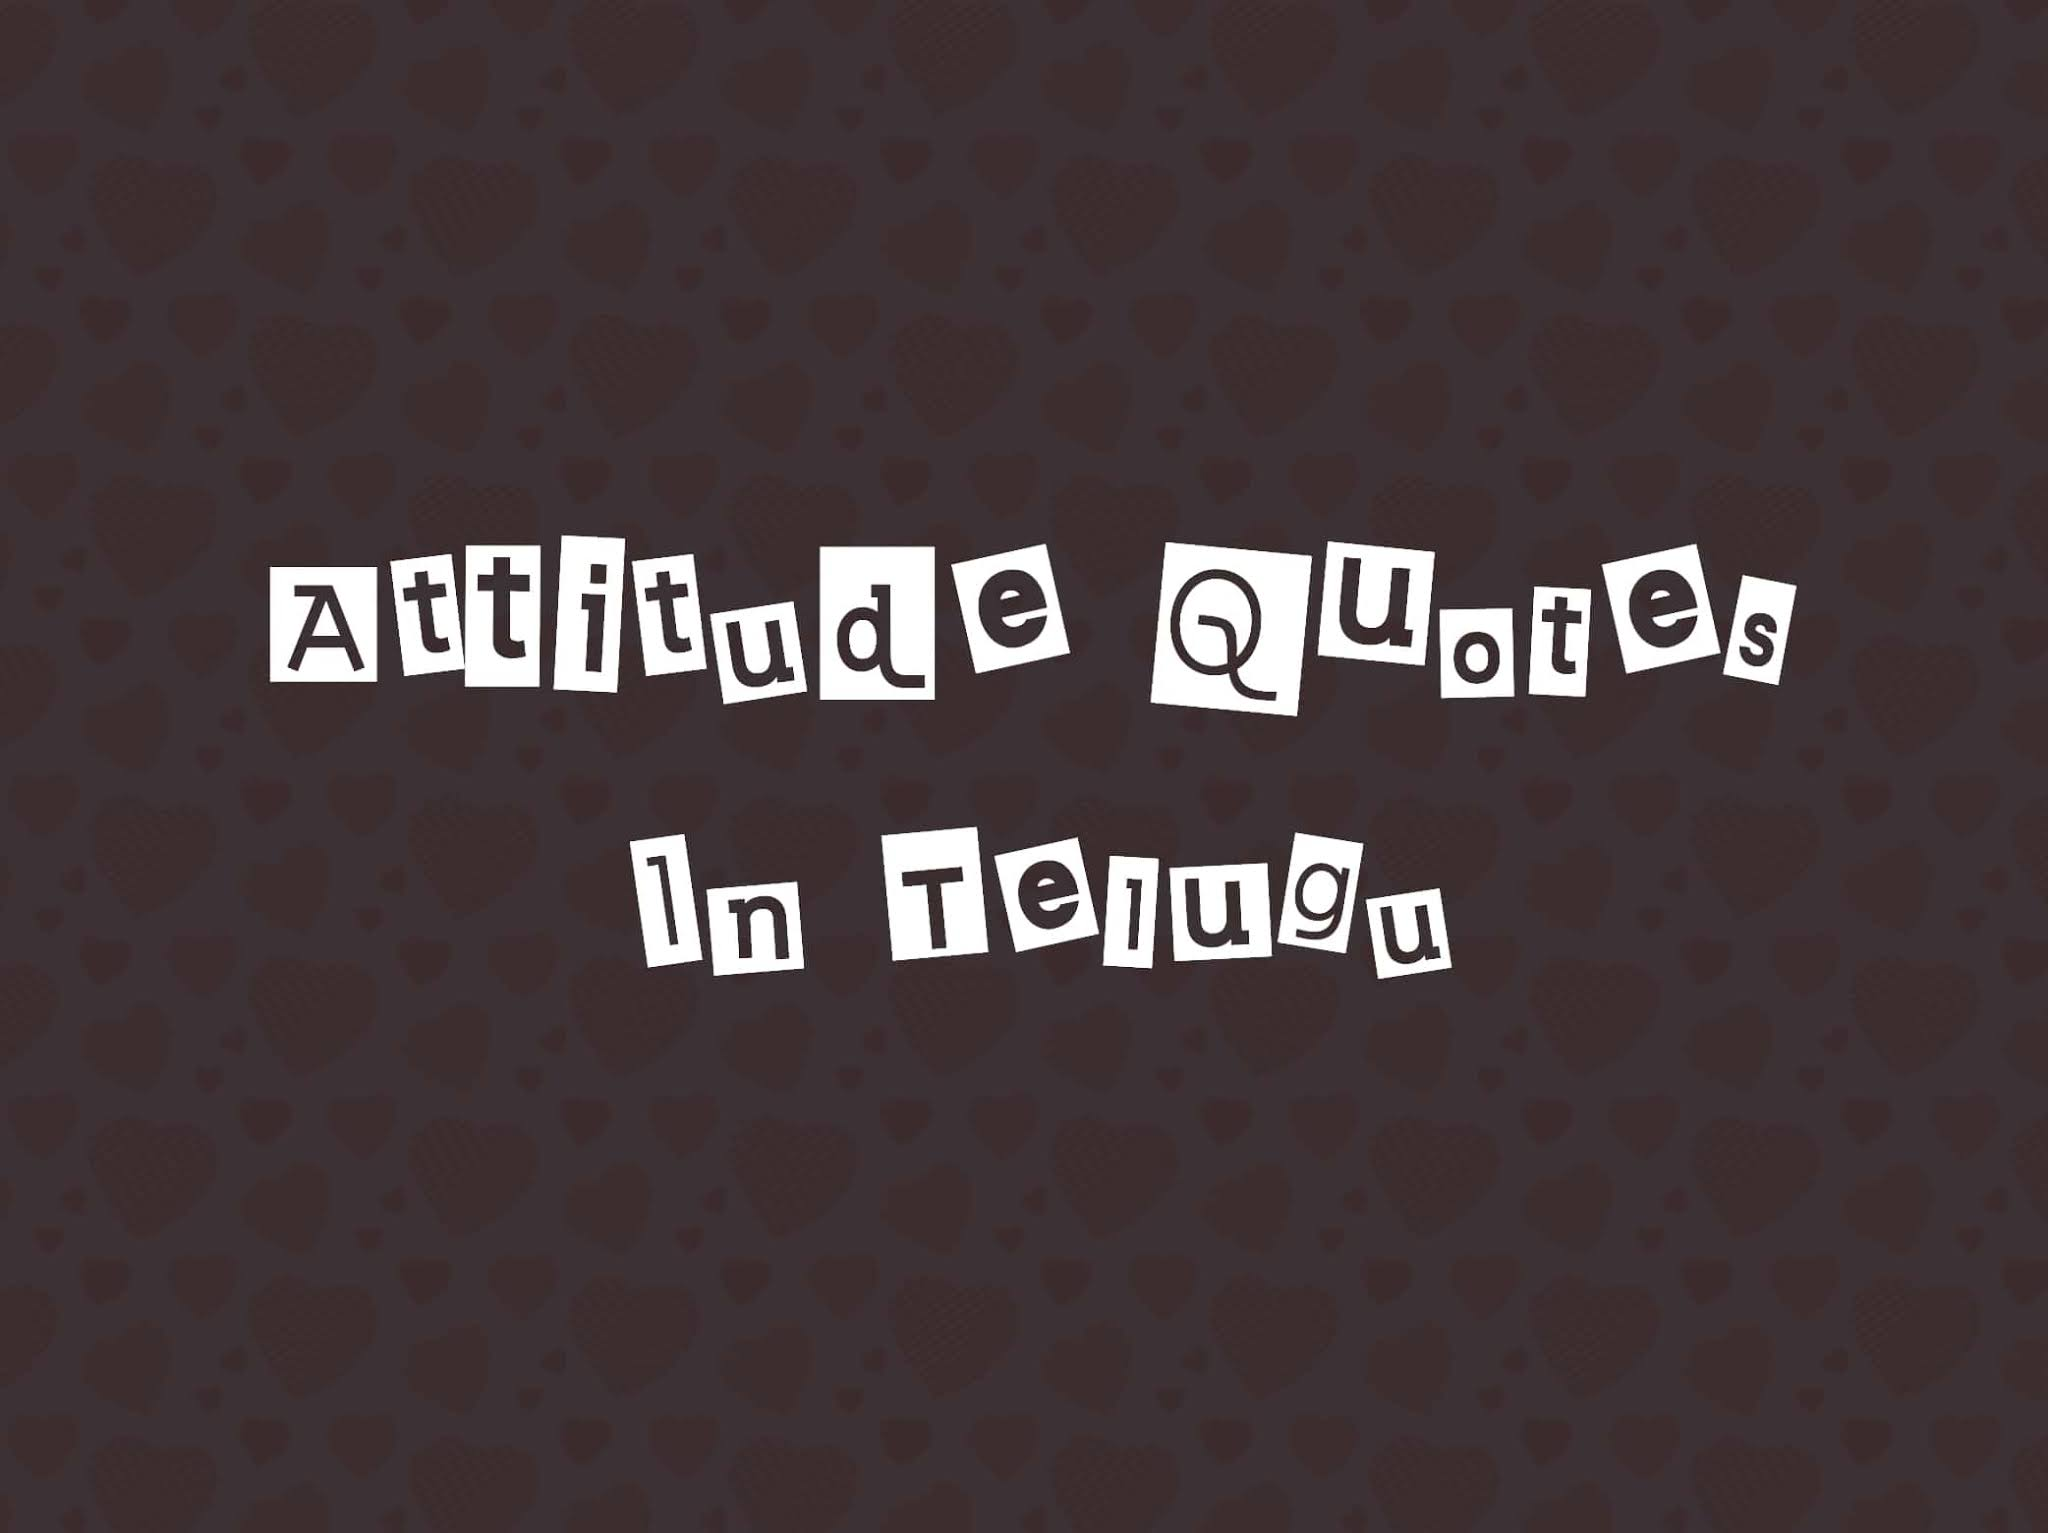 Best Attitude Whatsapp Status For Girls and Boys in Telugu   Quotes On Attitude in Telugu Text